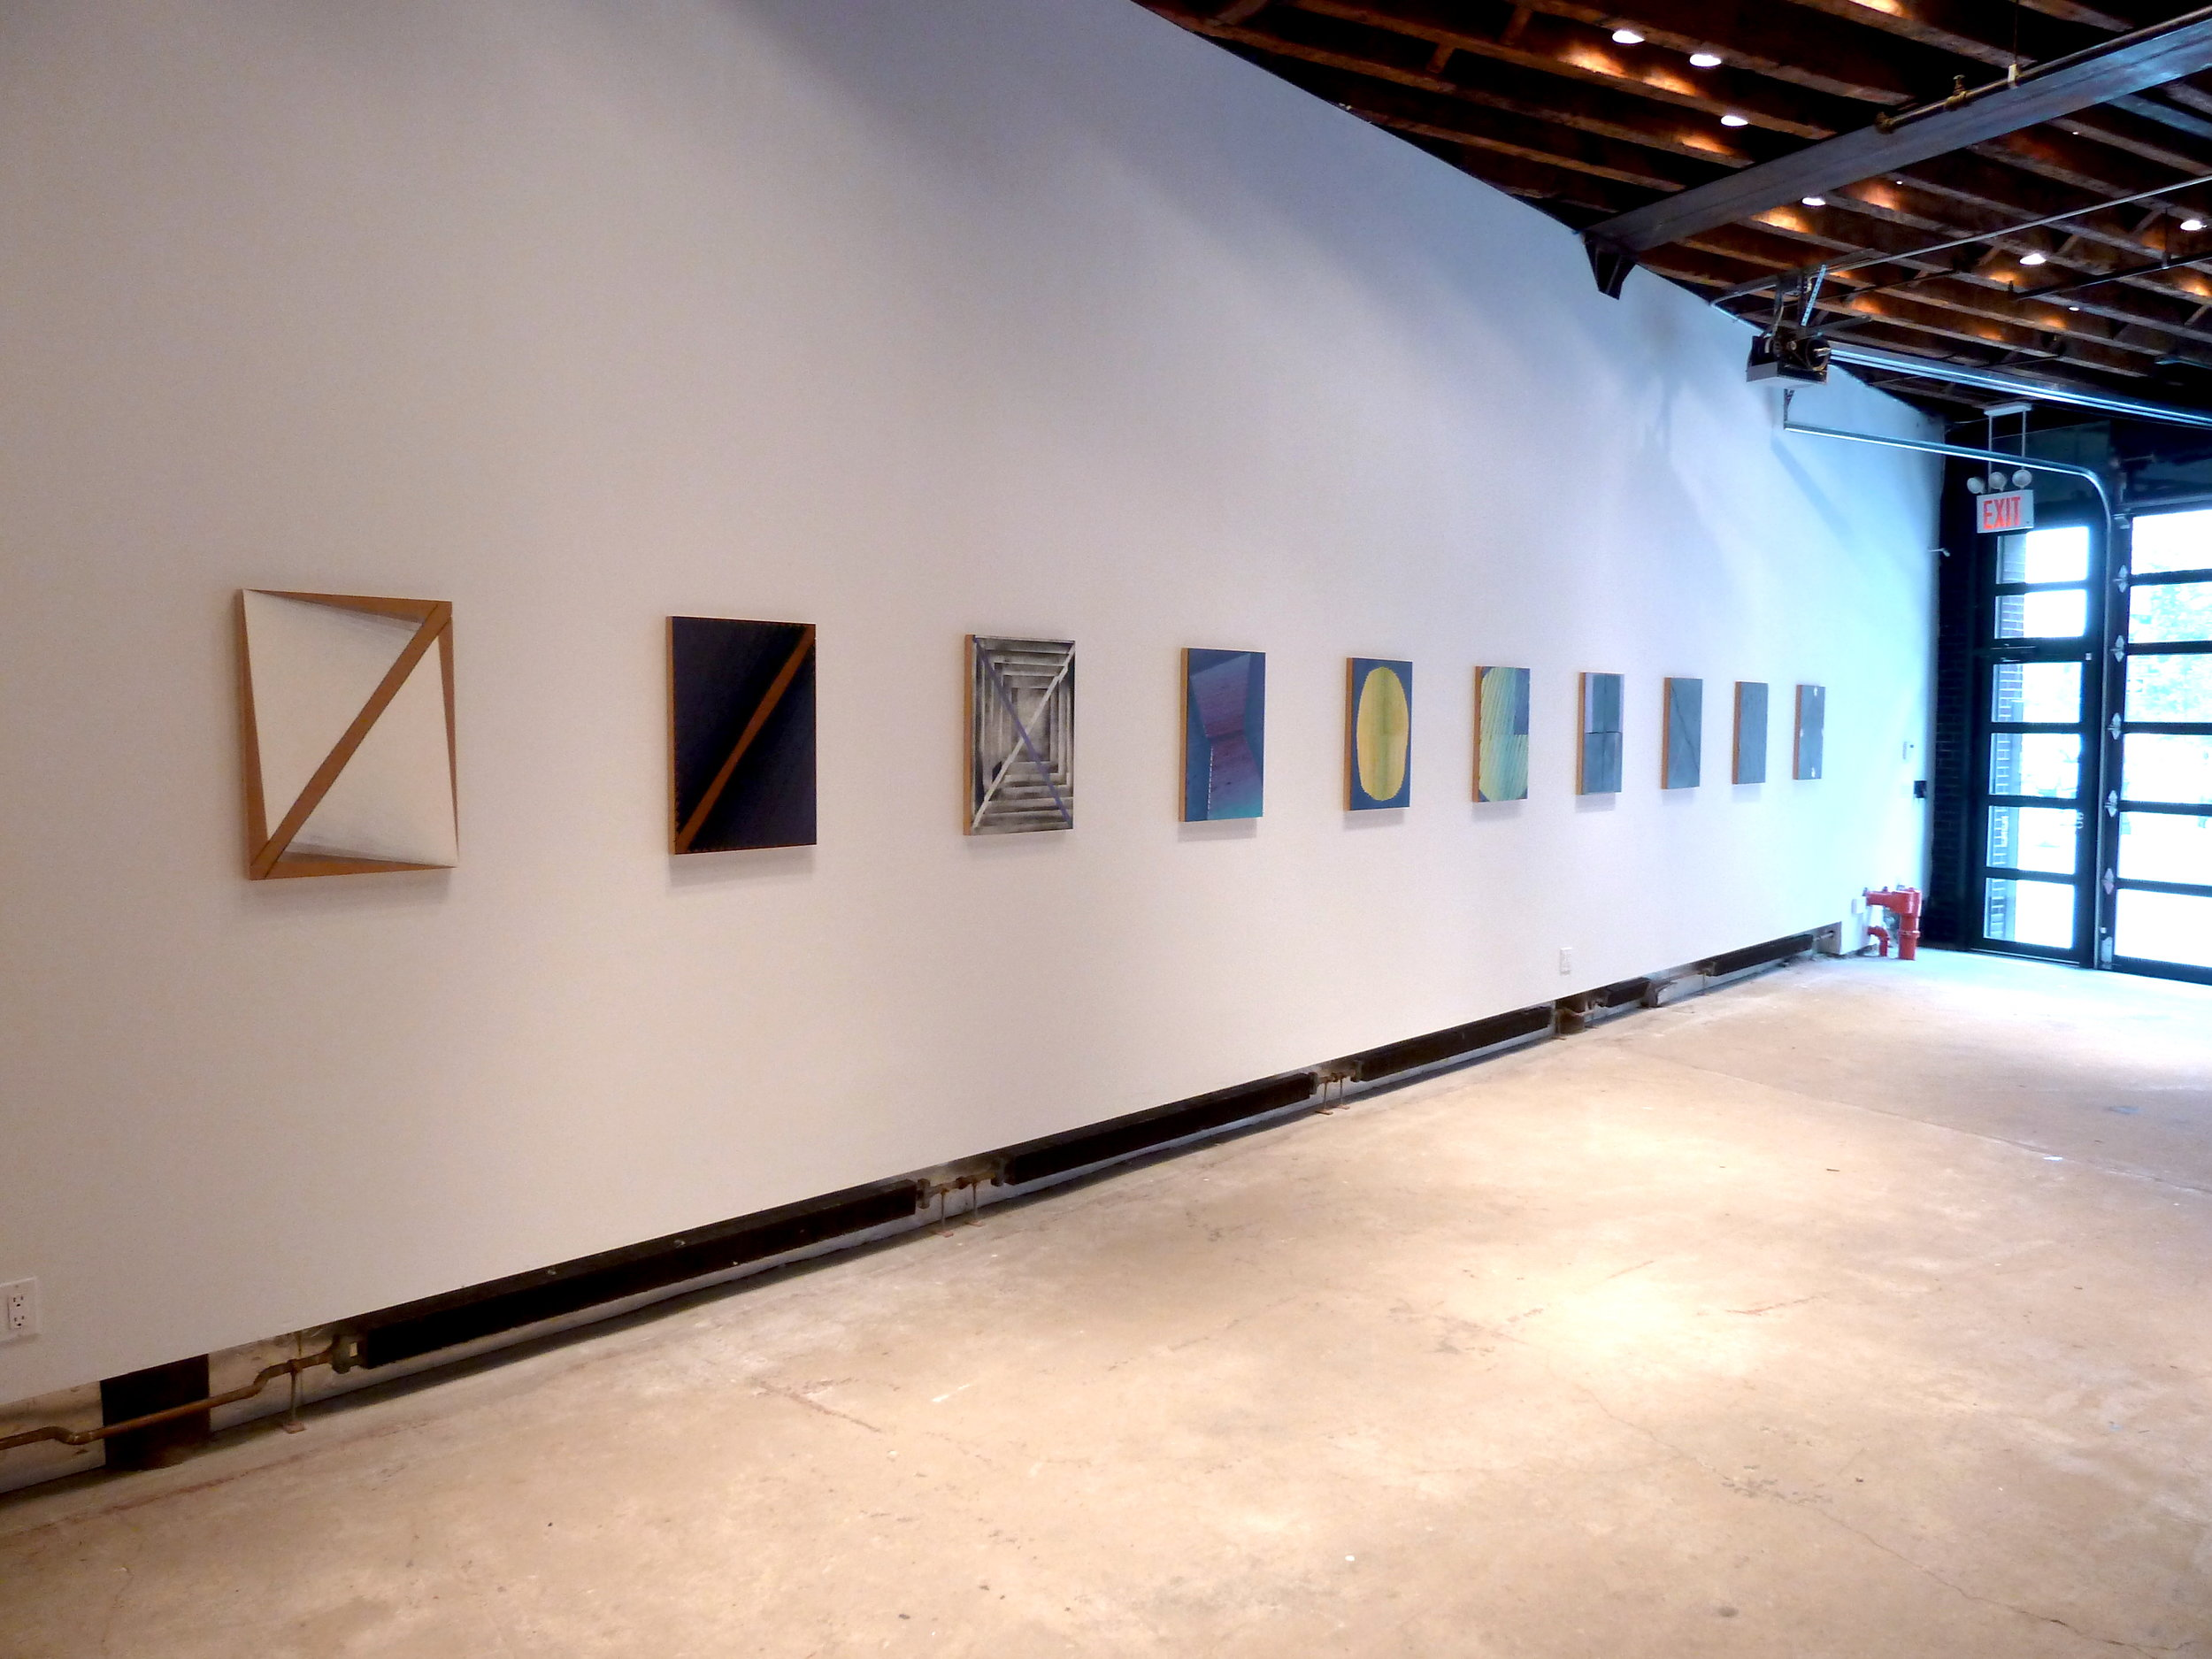 Solo show at Guided by Invoices Gallery, New York, NY. 2012. Photo: Rafael Vega